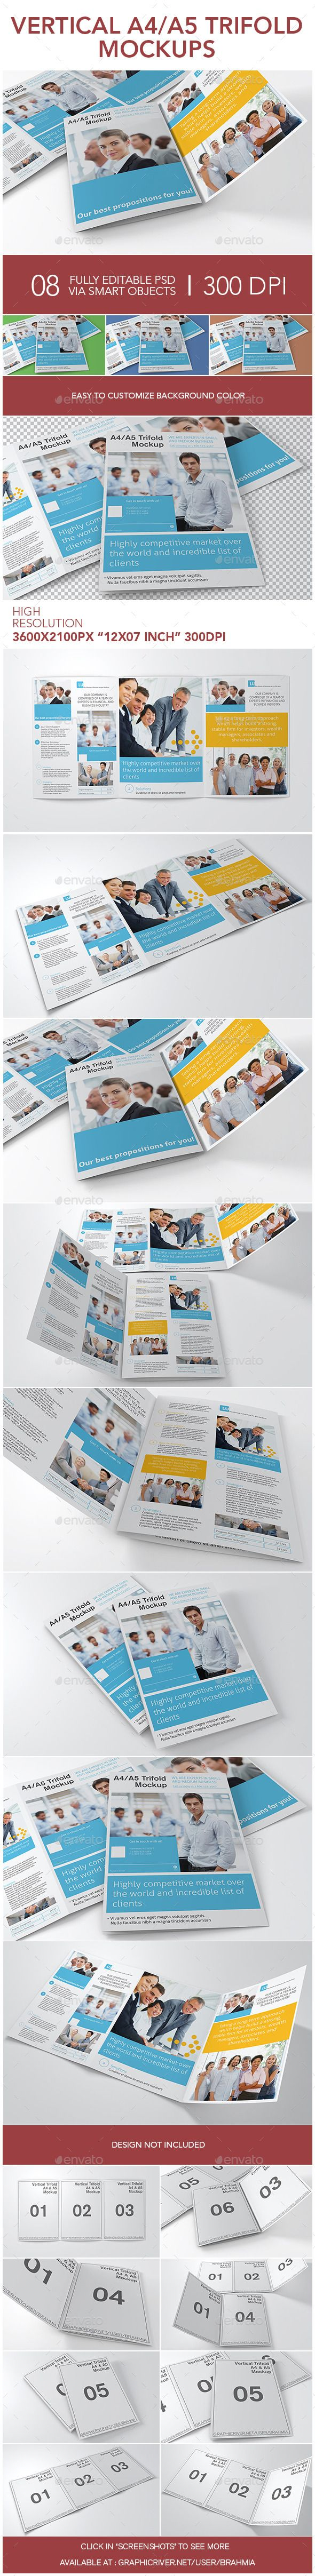 Vertical A4 or A5 Trifold Mockups #design Download: http://graphicriver.net/item/vertical-a4-or-a5-trifold-mockups/12410493?ref=ksioks